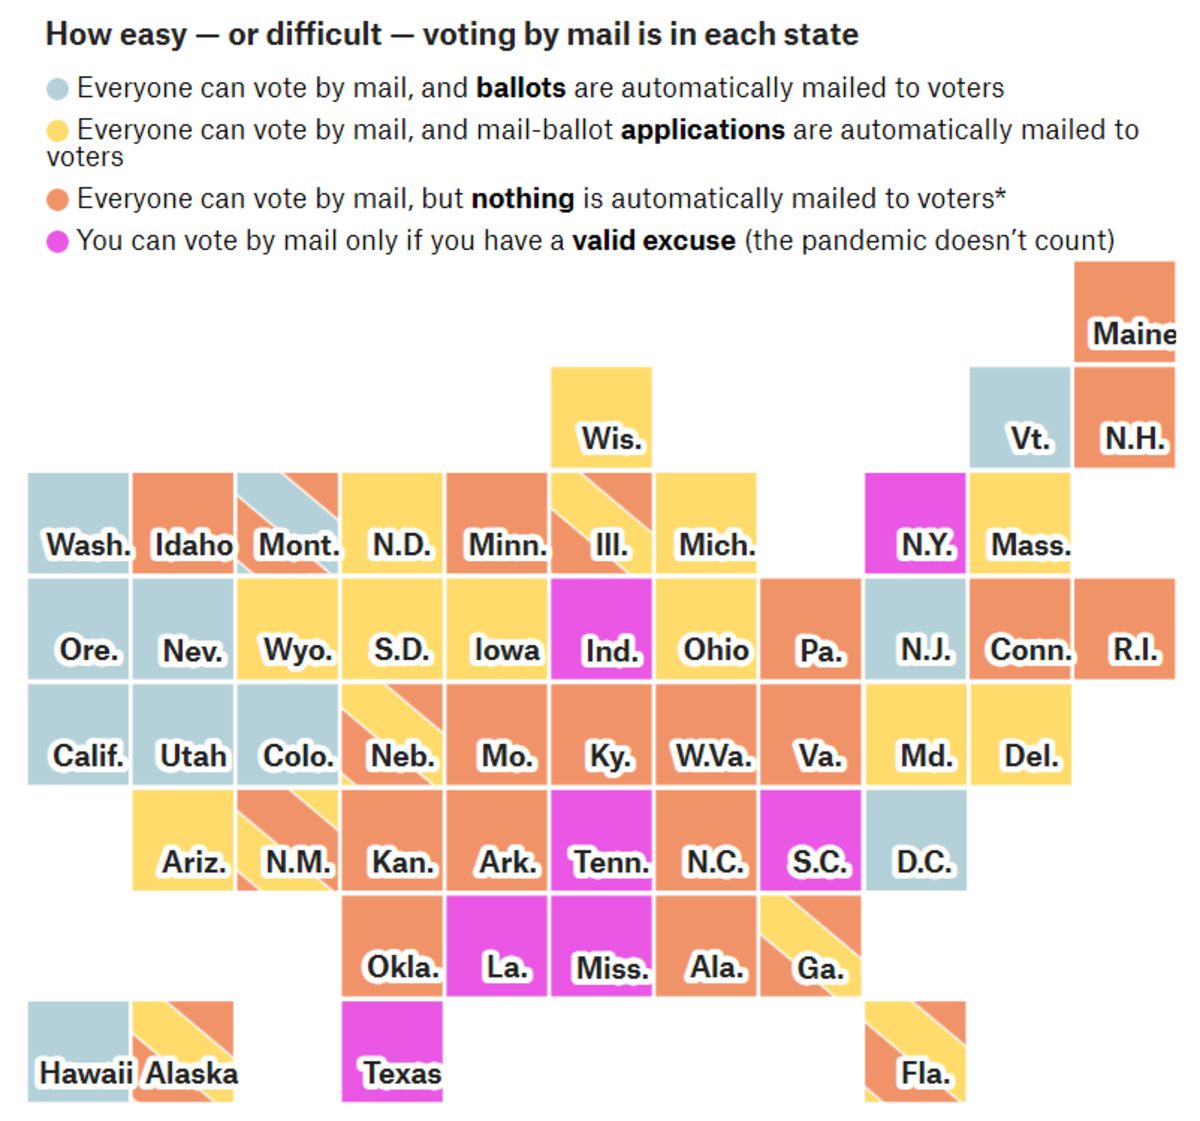 How Easy or Difficult voting by Mail